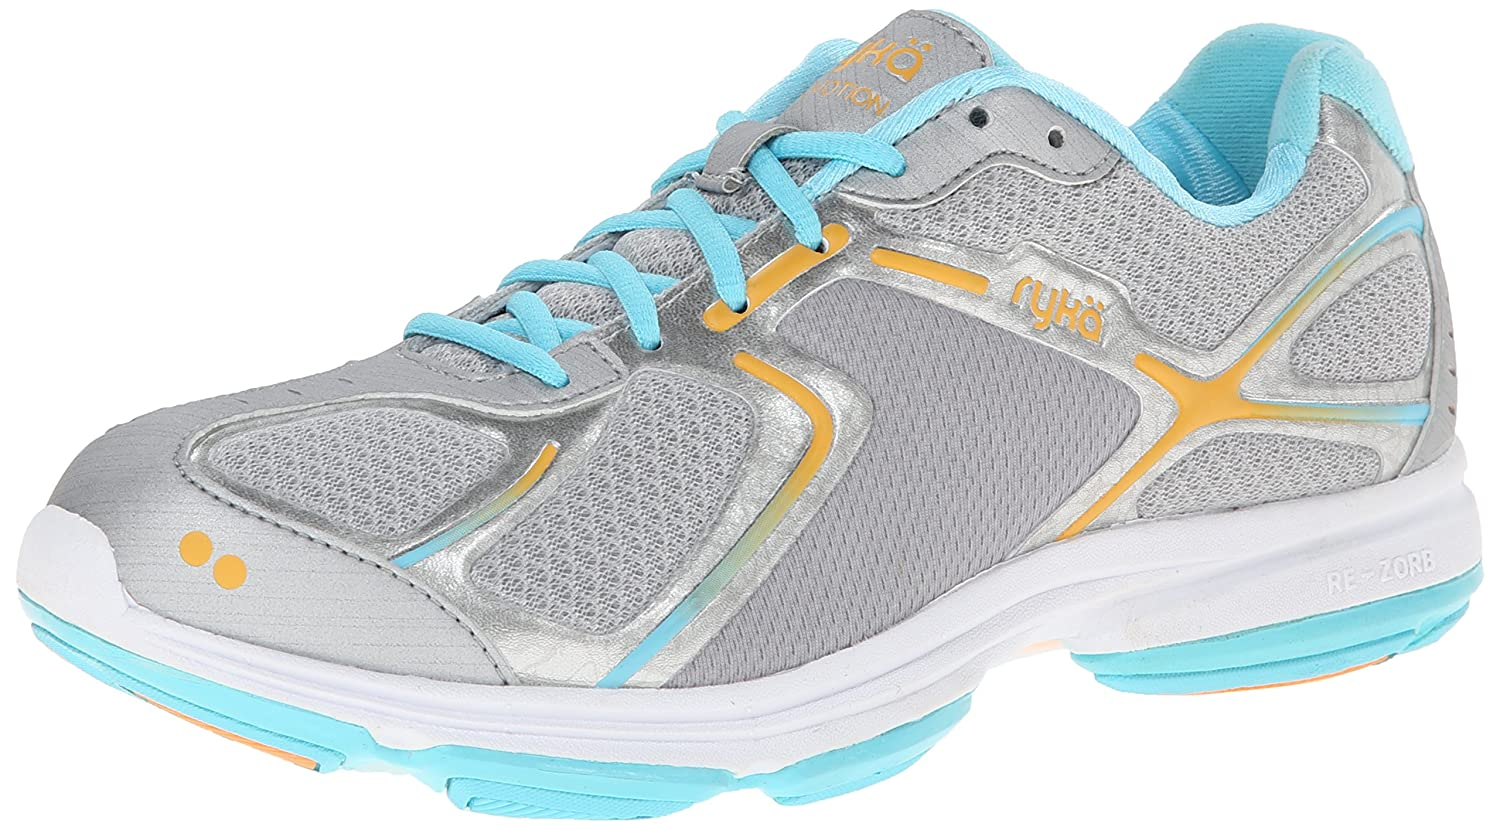 Ryka Women's Devotion Walking Shoe B00ISMKSAO 10 B(M) US|Grey/Light Blue/Orange